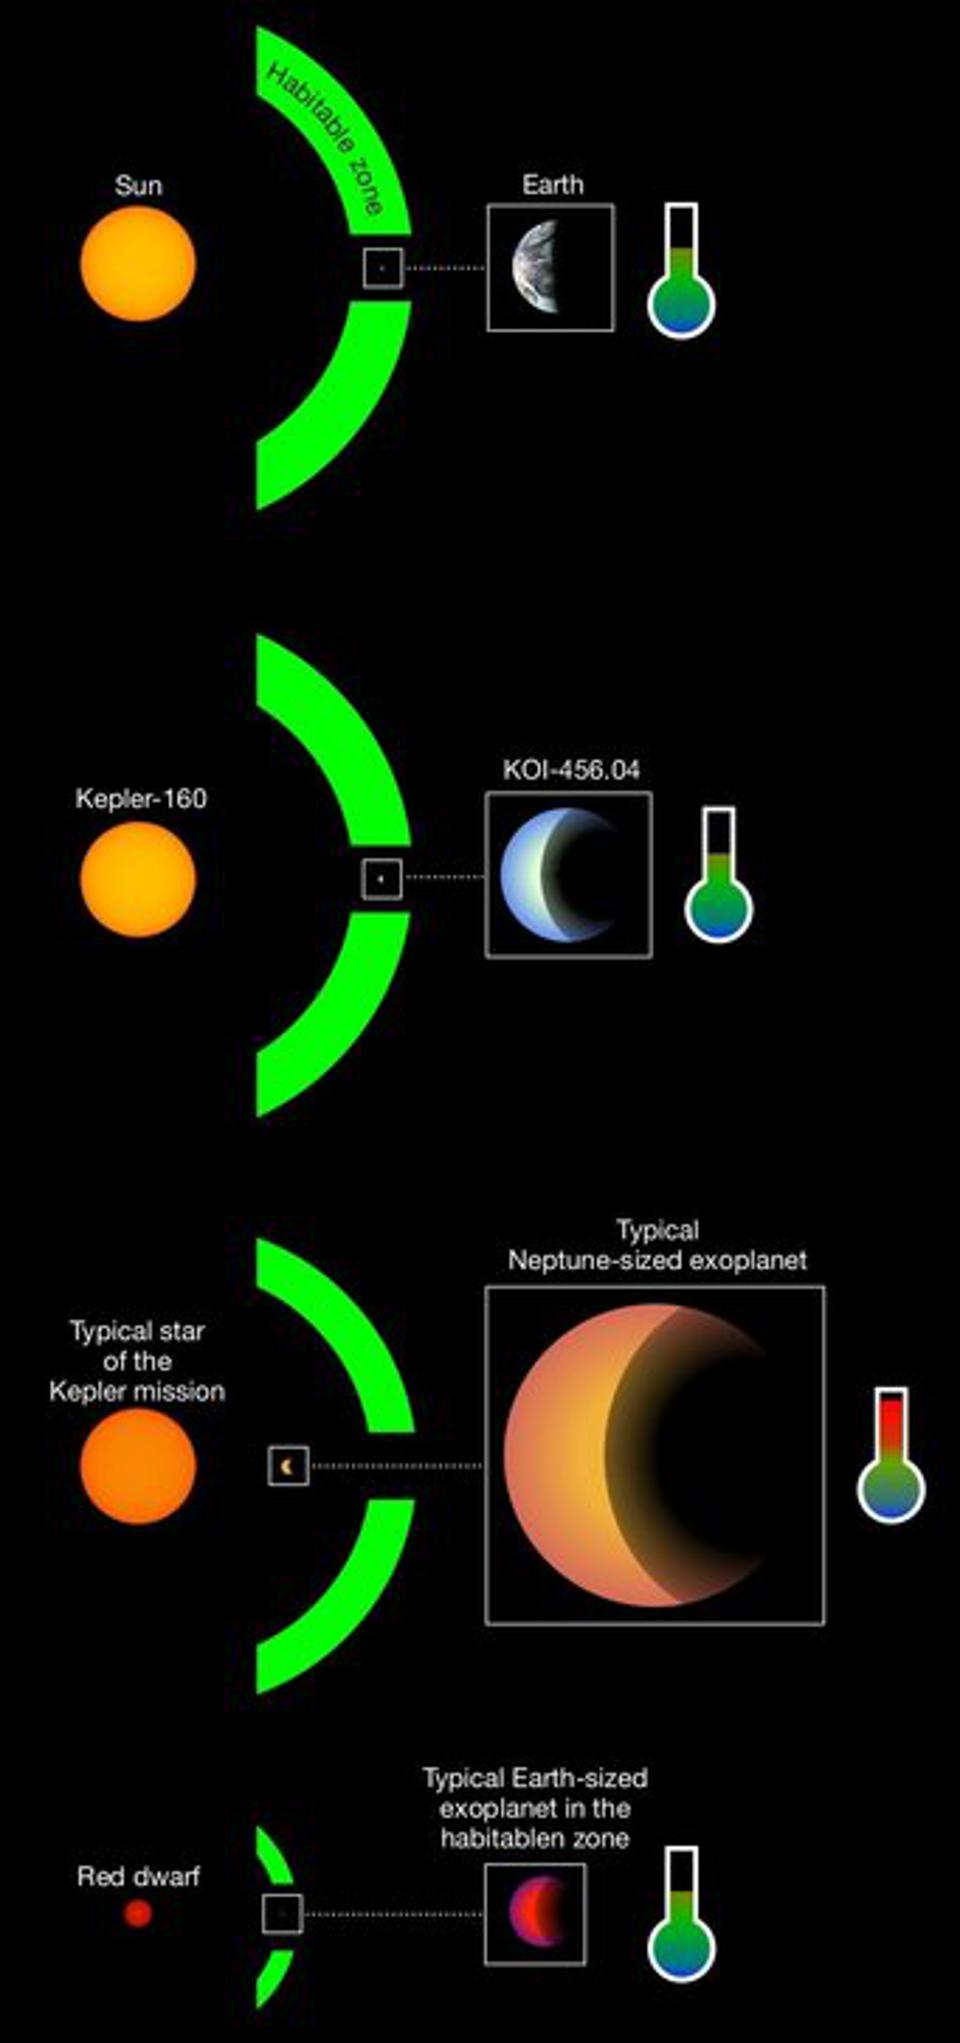 Most of the exoplanets from the Kepler mission are the size of Neptune and in relatively close orbits around their host stars, where temperatures on these planets would be far too hot for liquid surface water (third panel from above). Almost all of the Earth-sized planets known to have potentially Earth-like surface temperatures are in orbit around red dwarf stars, which do not emit visible light but infrared radiation instead (bottom panel).The Earth is in the right distance from the Sun to have surface temperatures required for the existence of liquid water. The newly discovered planet candidate KOI-456.04 and its star Kepler-160 (second panel from above) have great similarities to Earth and Sun (top panel).